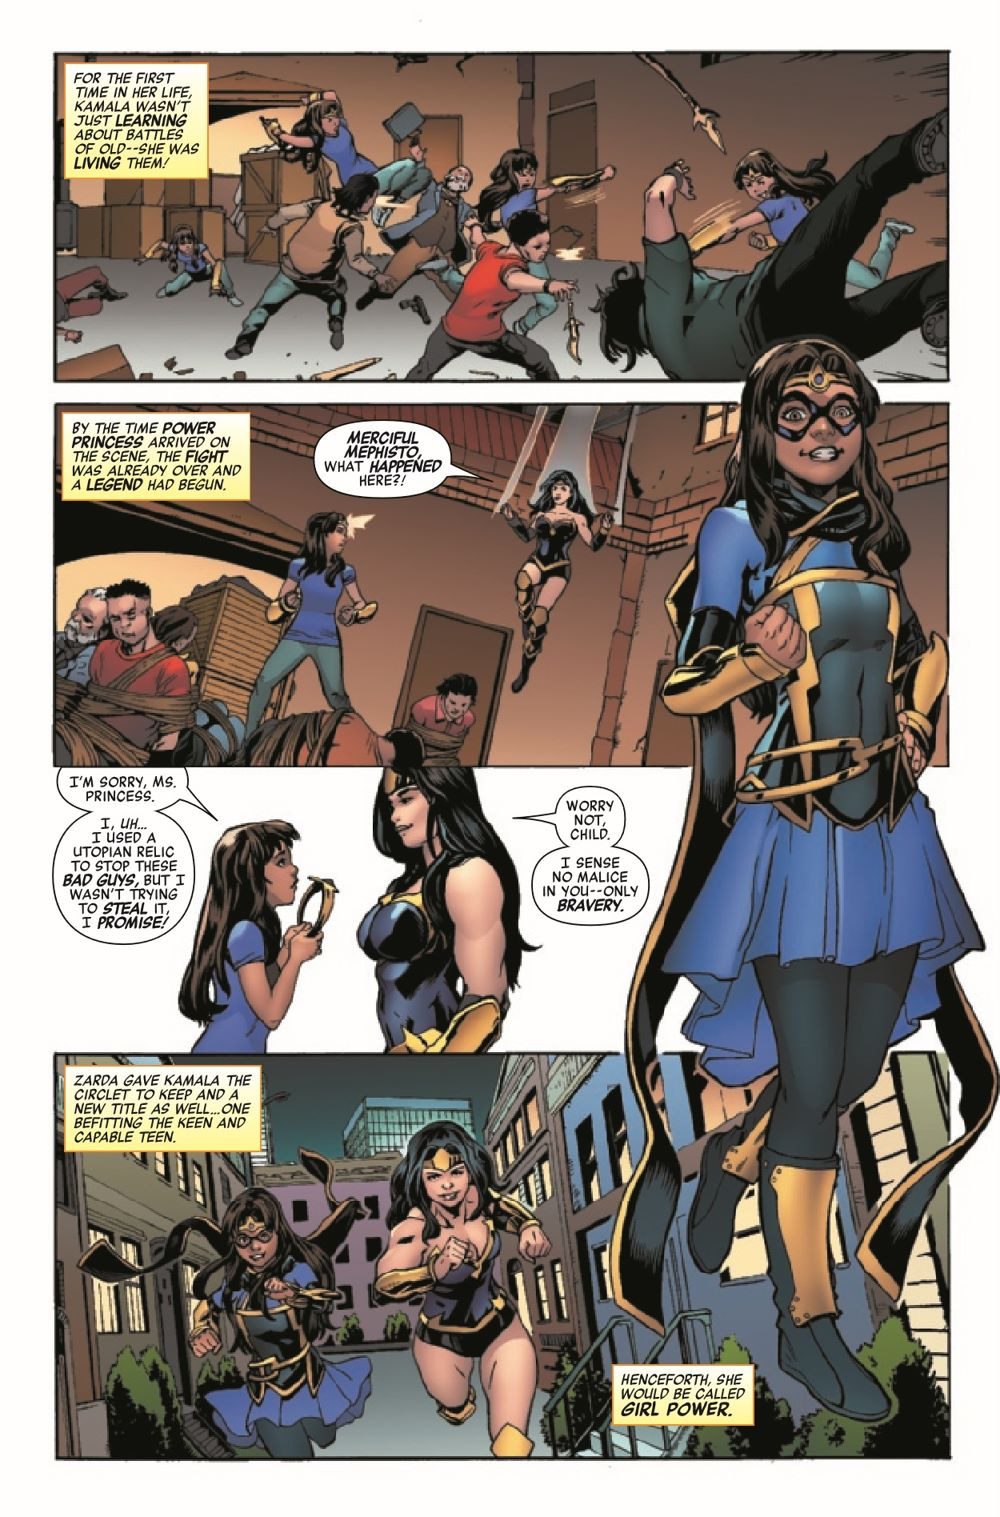 HRYOUNGSQ2021001_Preview-6 ComicList Previews: HEROES REBORN YOUNG SQUADRON #1